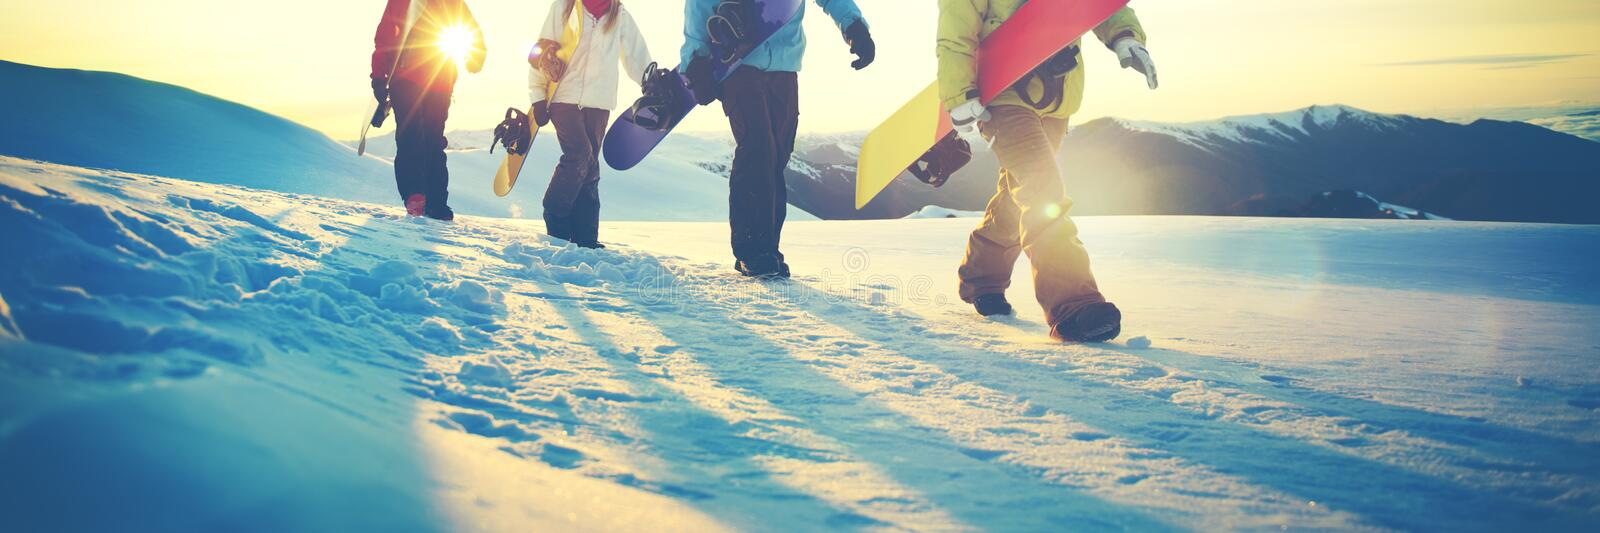 People Snowboard Winter Sport Friendship Concept stock image